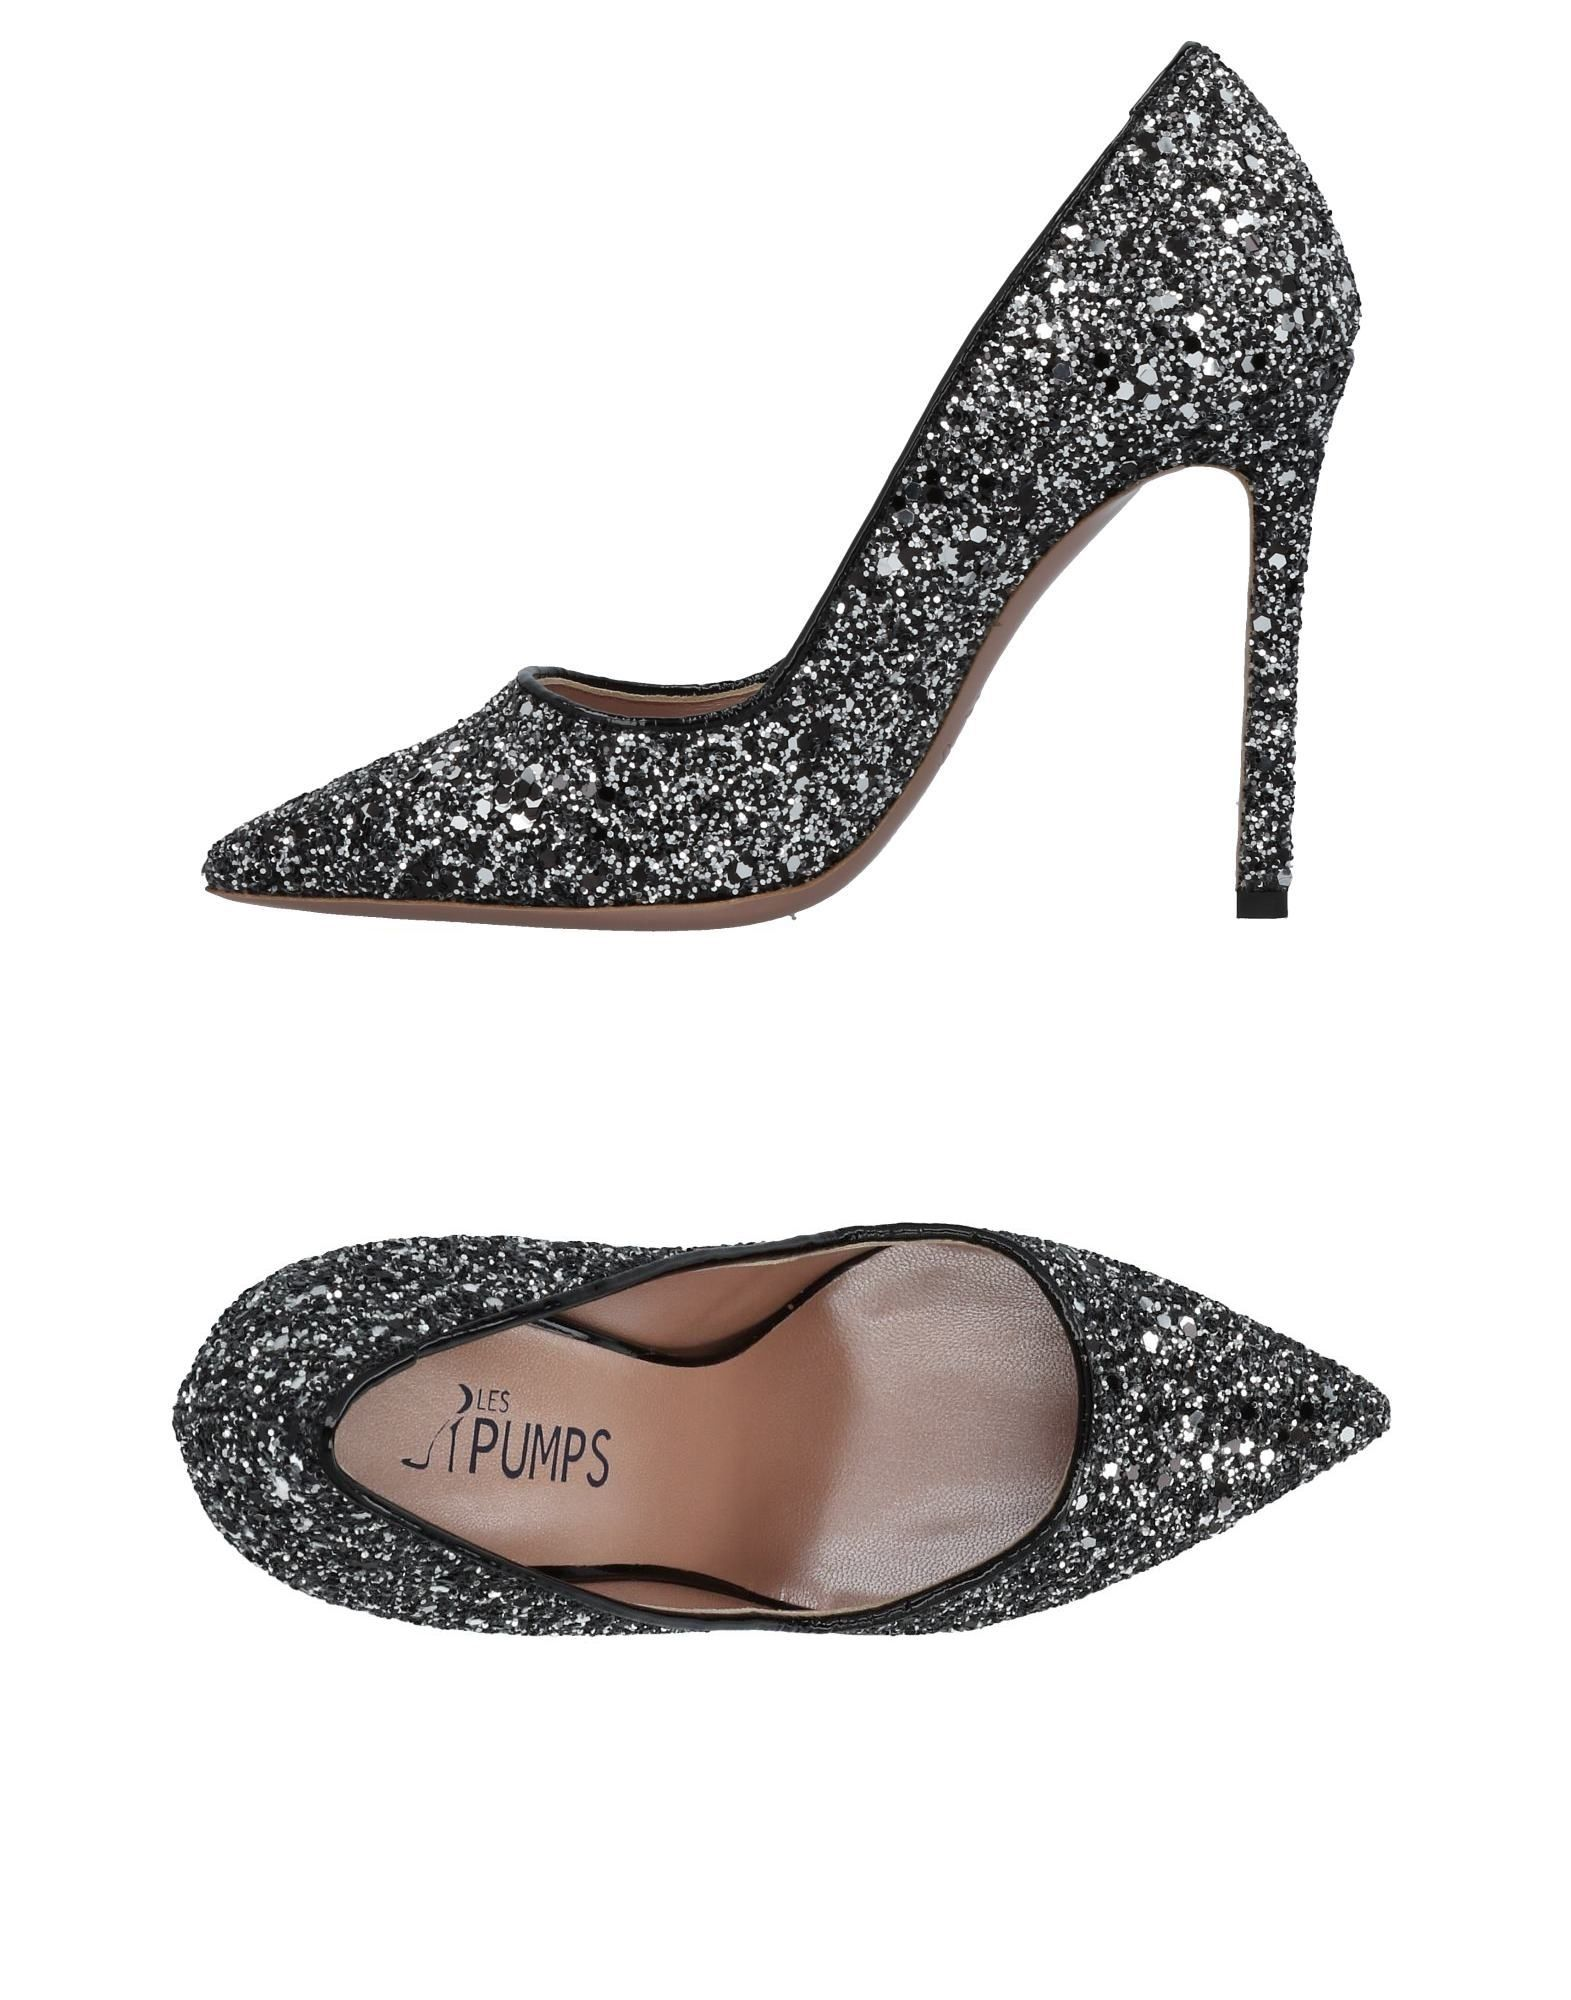 LES PUMPS Туфли silver patent leather thin high heels pointed toe pumps sexy woman shoes mixed colors fur ball decoration dress pumps high heels